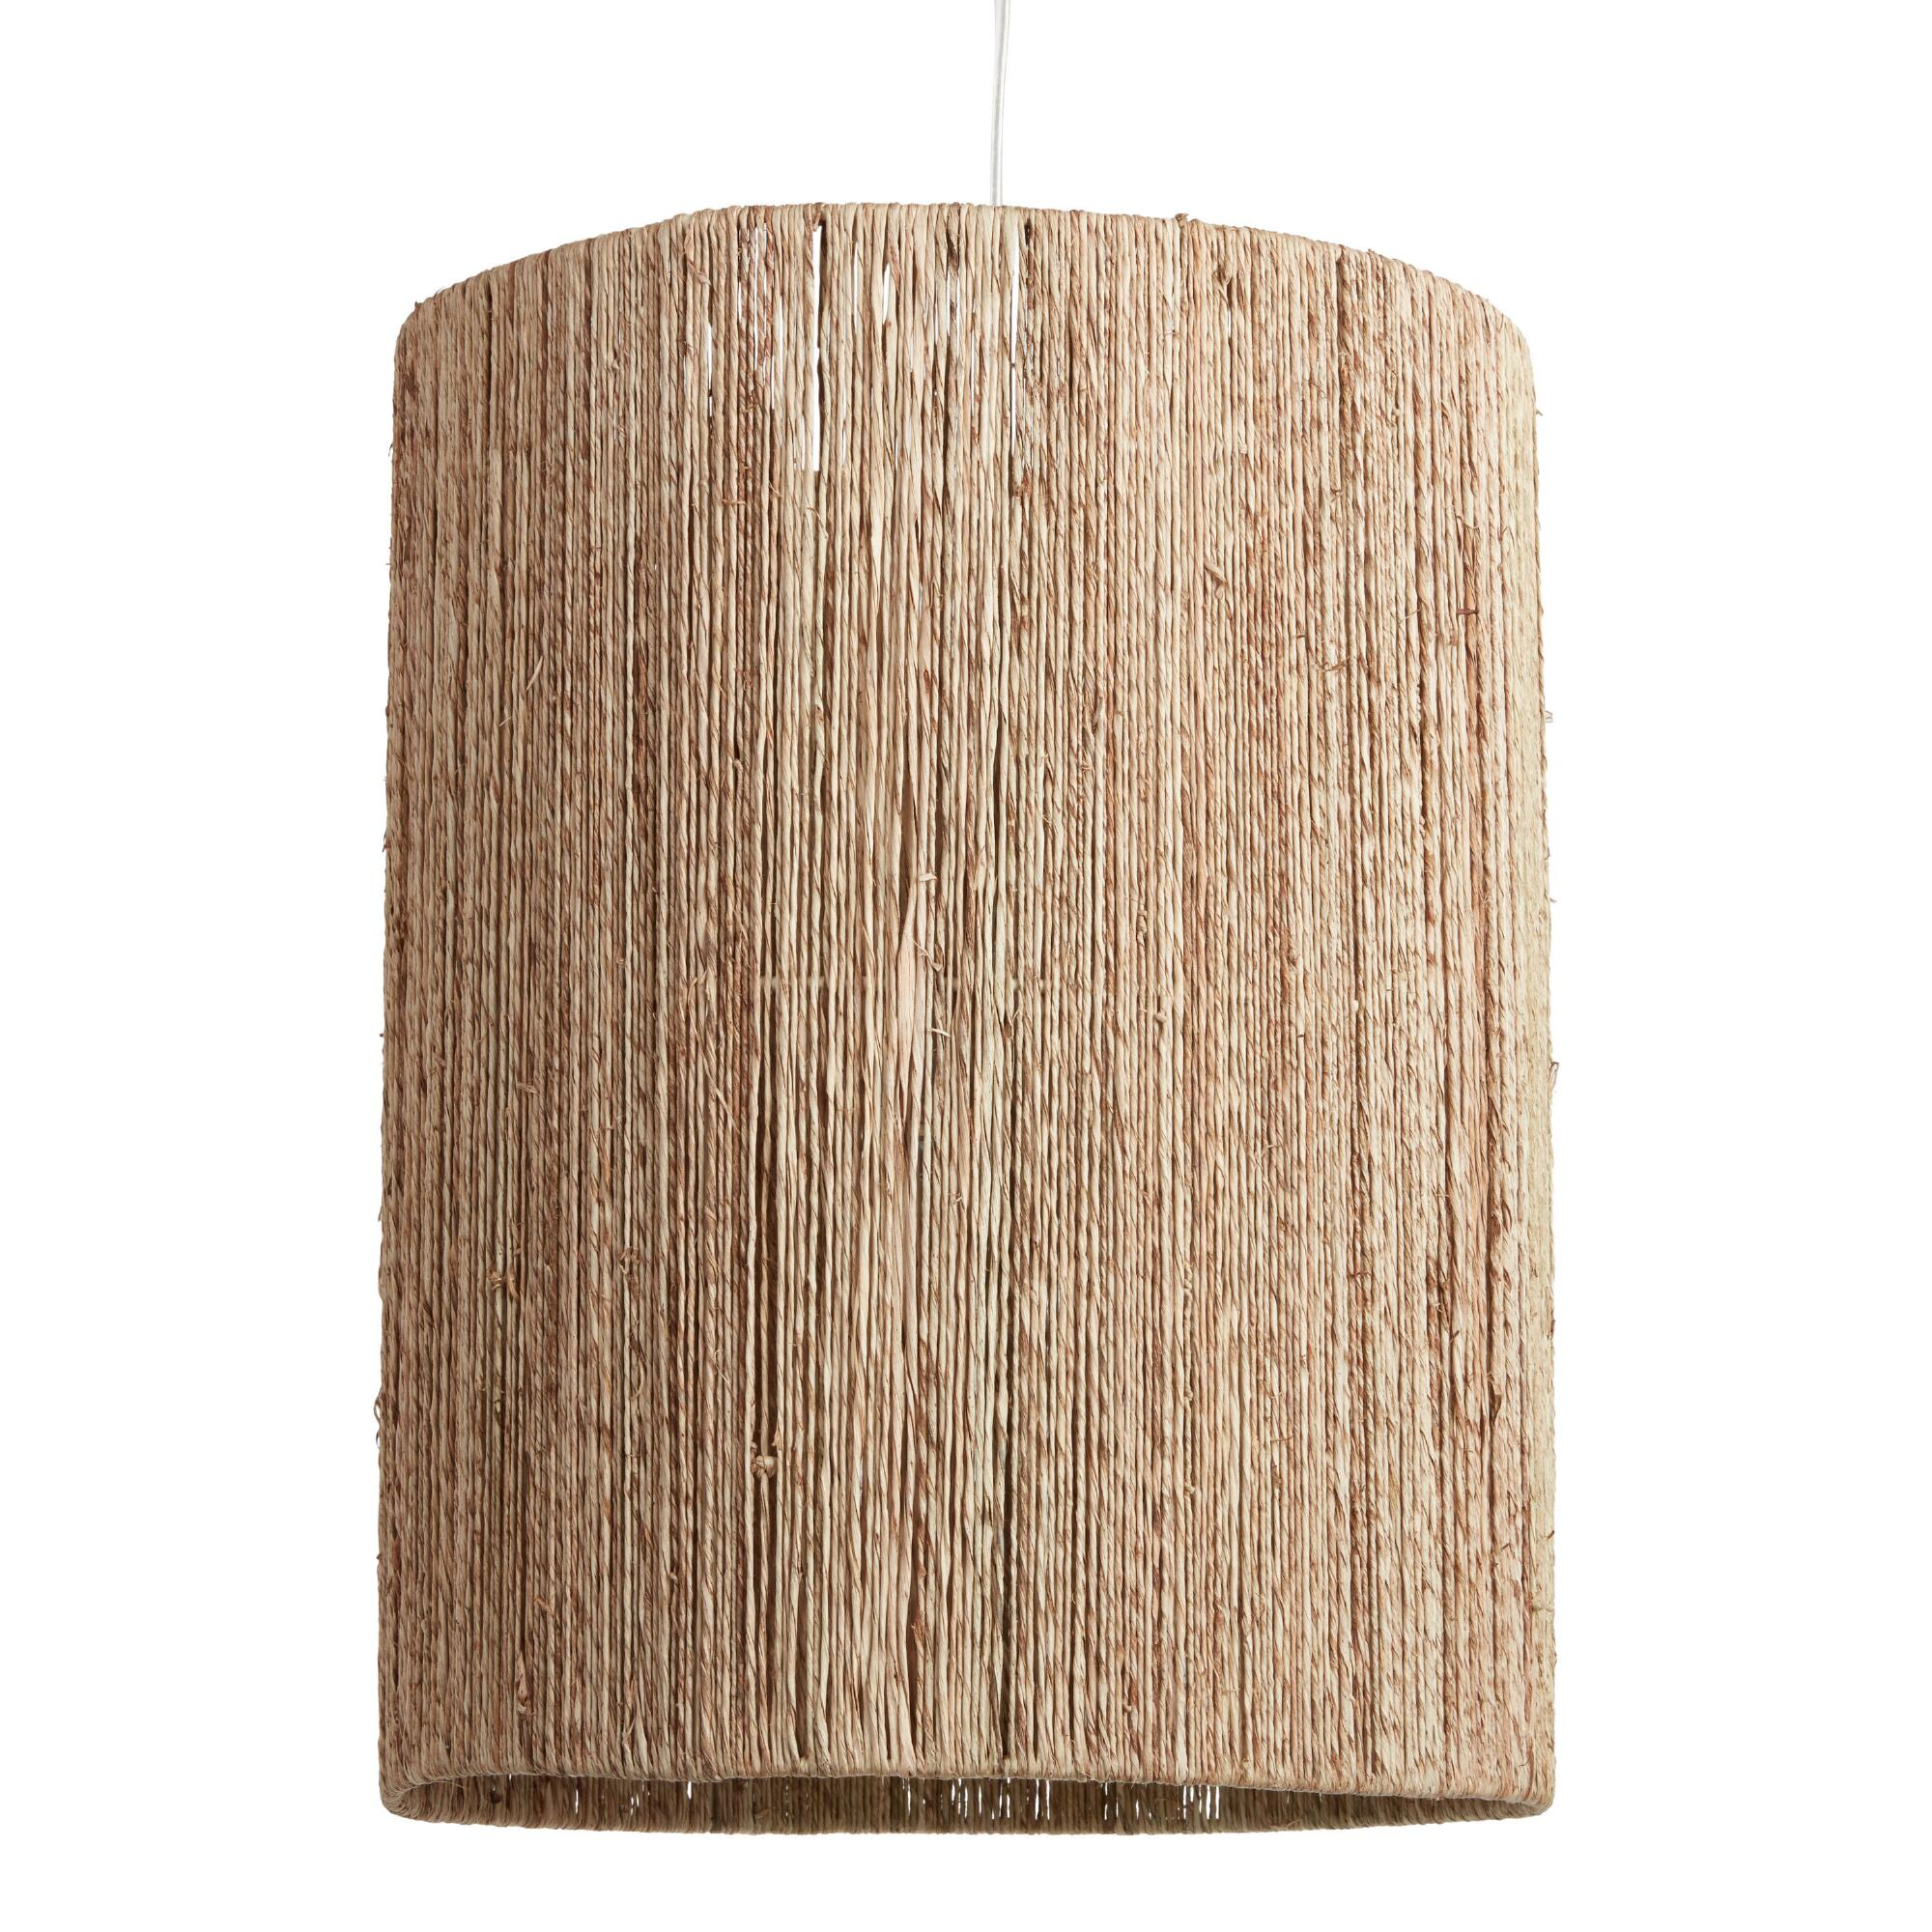 Large lamp shades world market tall woven jute drum floor lamp shade aloadofball Choice Image